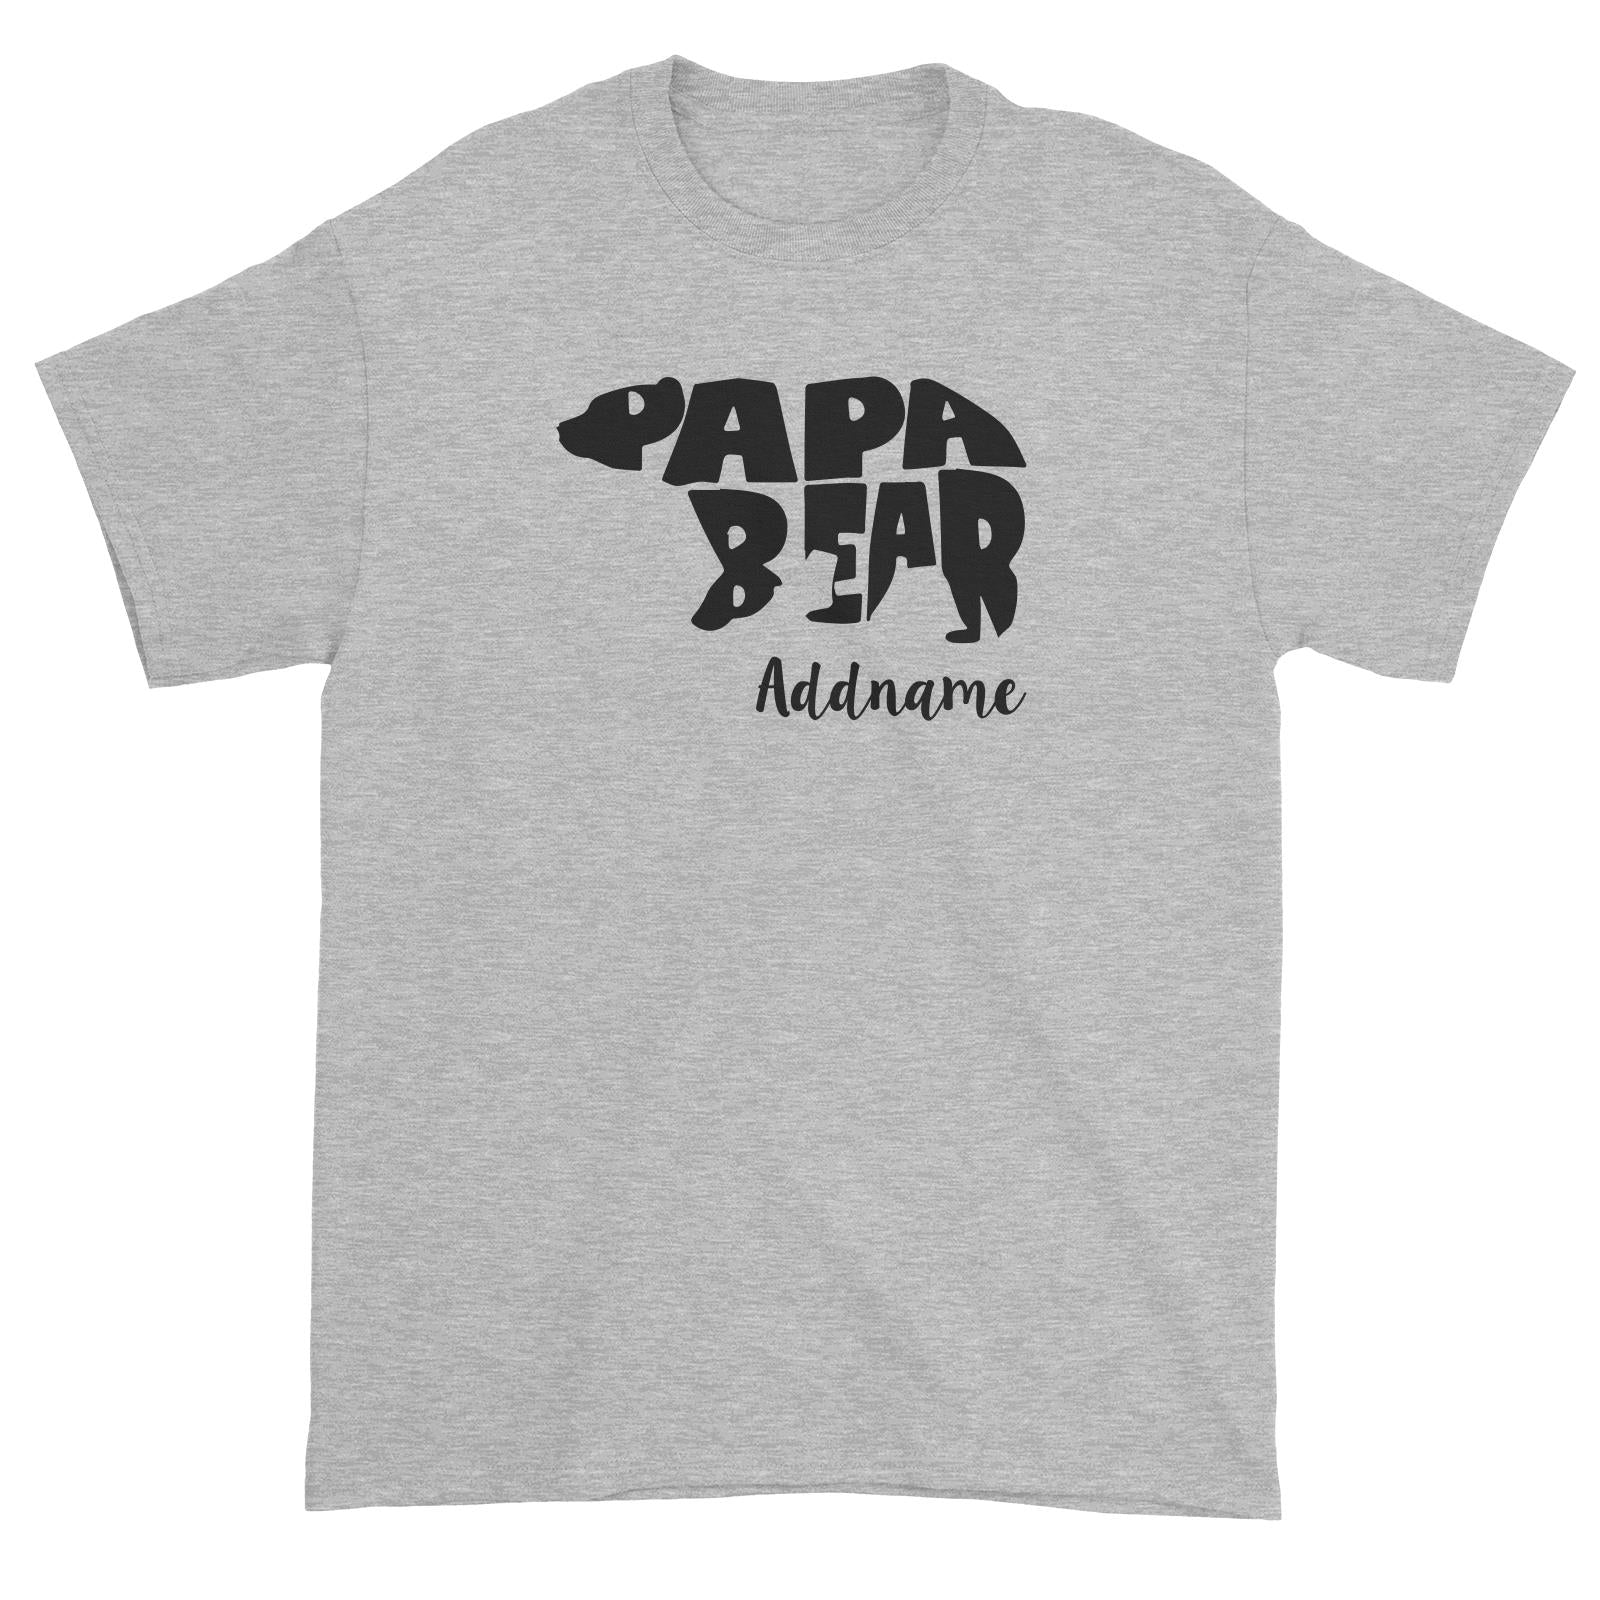 Papa Bear Silhouette Addname Unisex T-Shirt